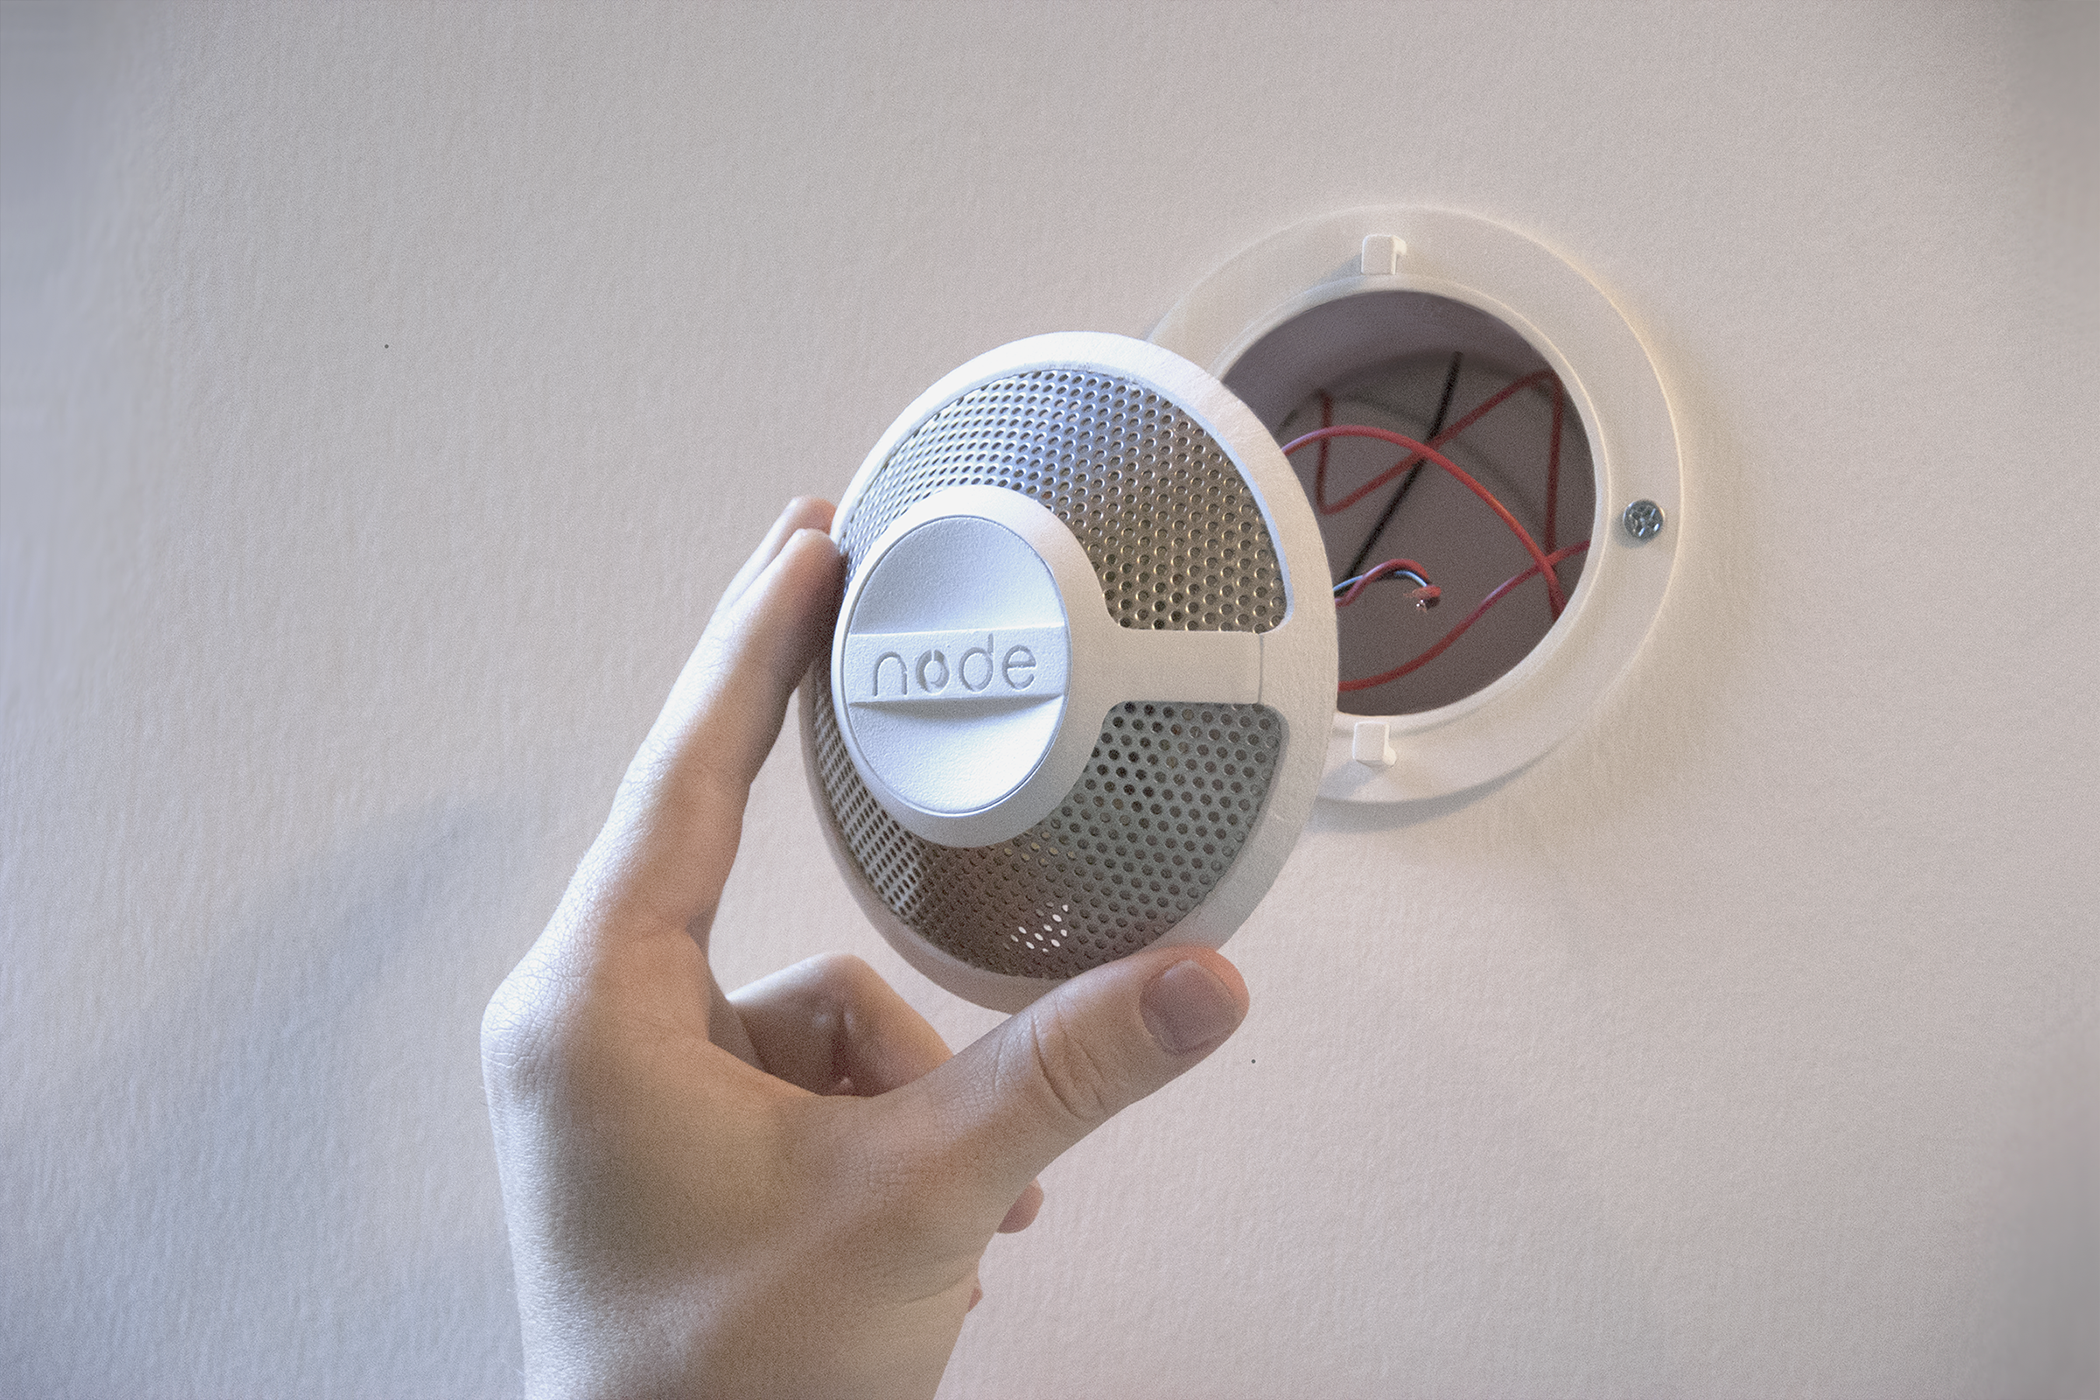 Battery or grid powered - Node can be mounted to the wall or ceiling. In accordance with safety code, Node can be adapted to either be battery powered or attached to your homes power supply.